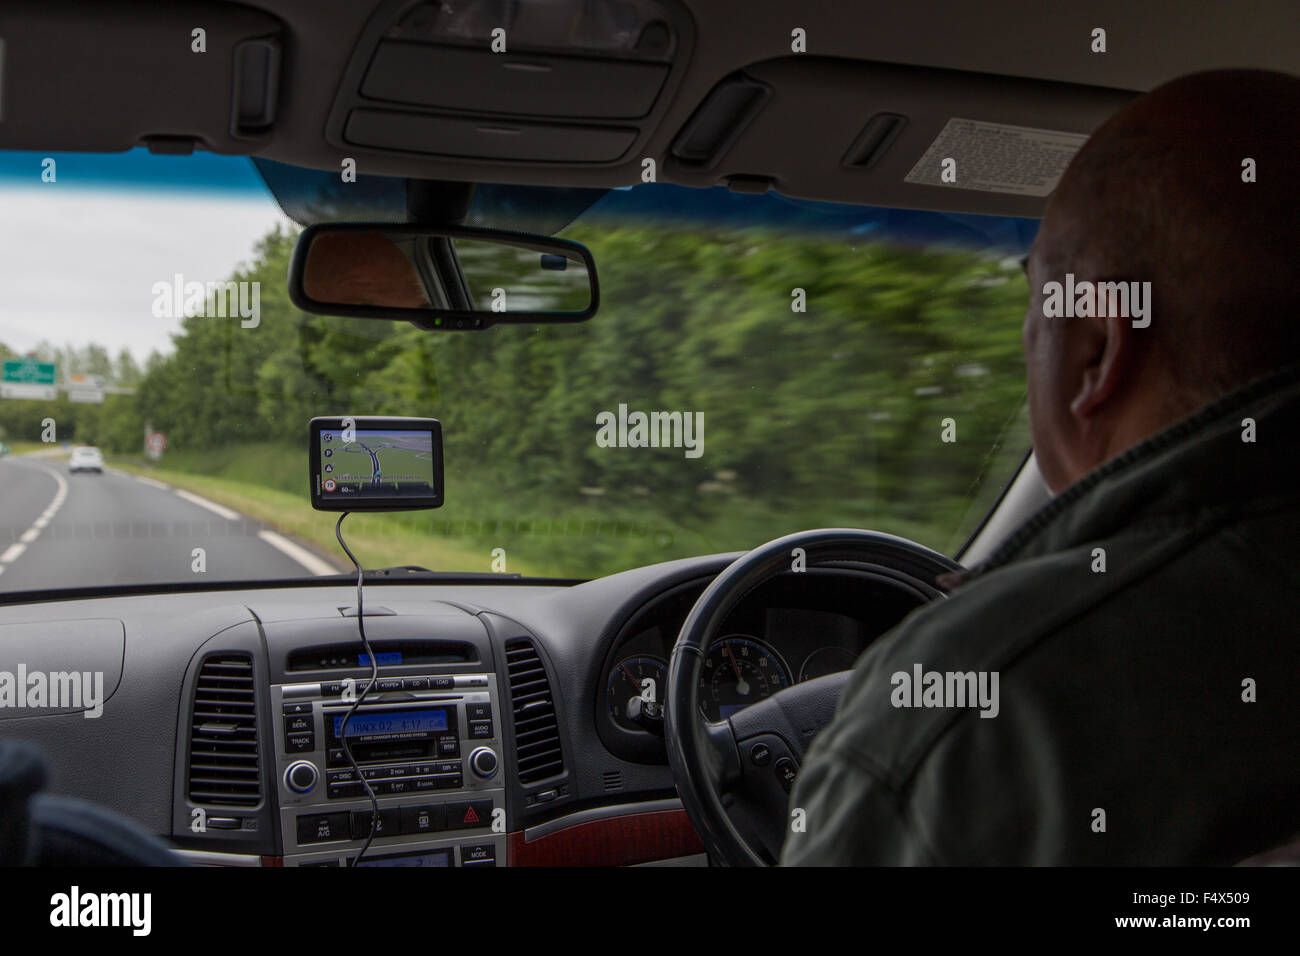 Male driver using a sat nav (satellite navigation device) on a main road in UK - Stock Image